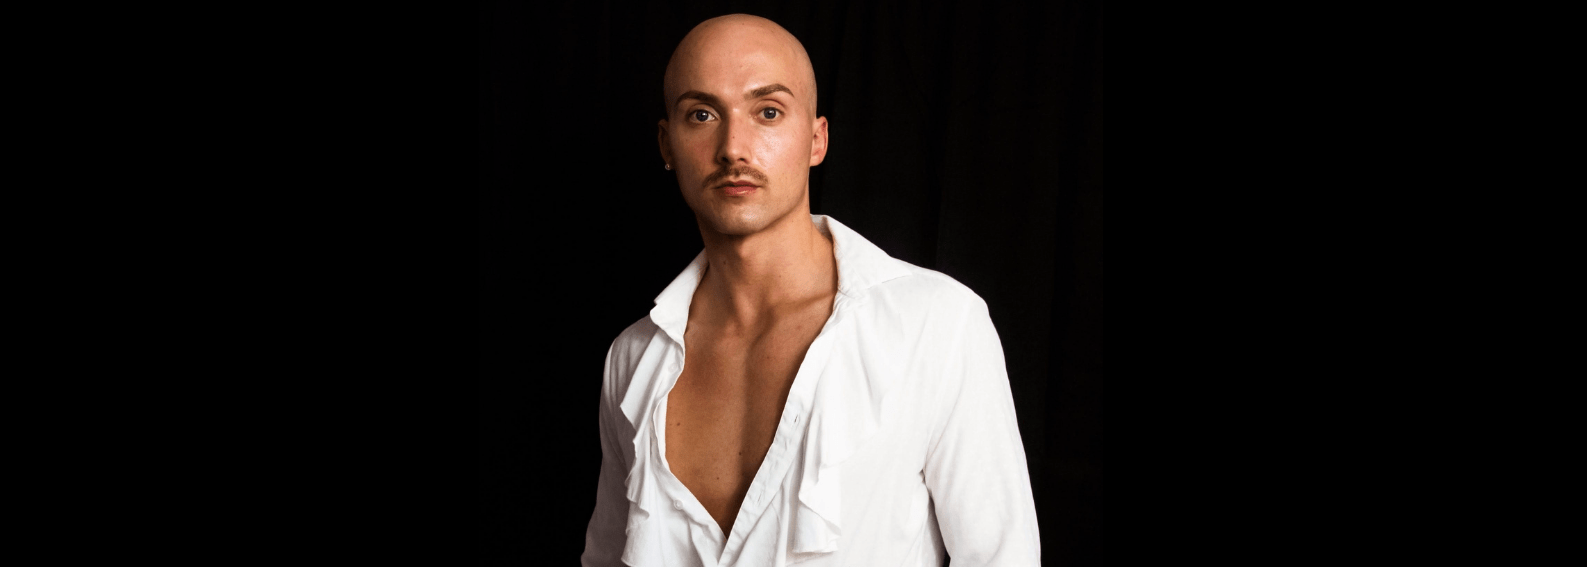 J. Logan Smilges, a white gender nonconforming trans person with a mustache, looks toward the camera without smiling. They are wearing a long-sleeve white shirt with ruffles down the middle and black pants with a checkered print. Photo credit: Darius Stokes